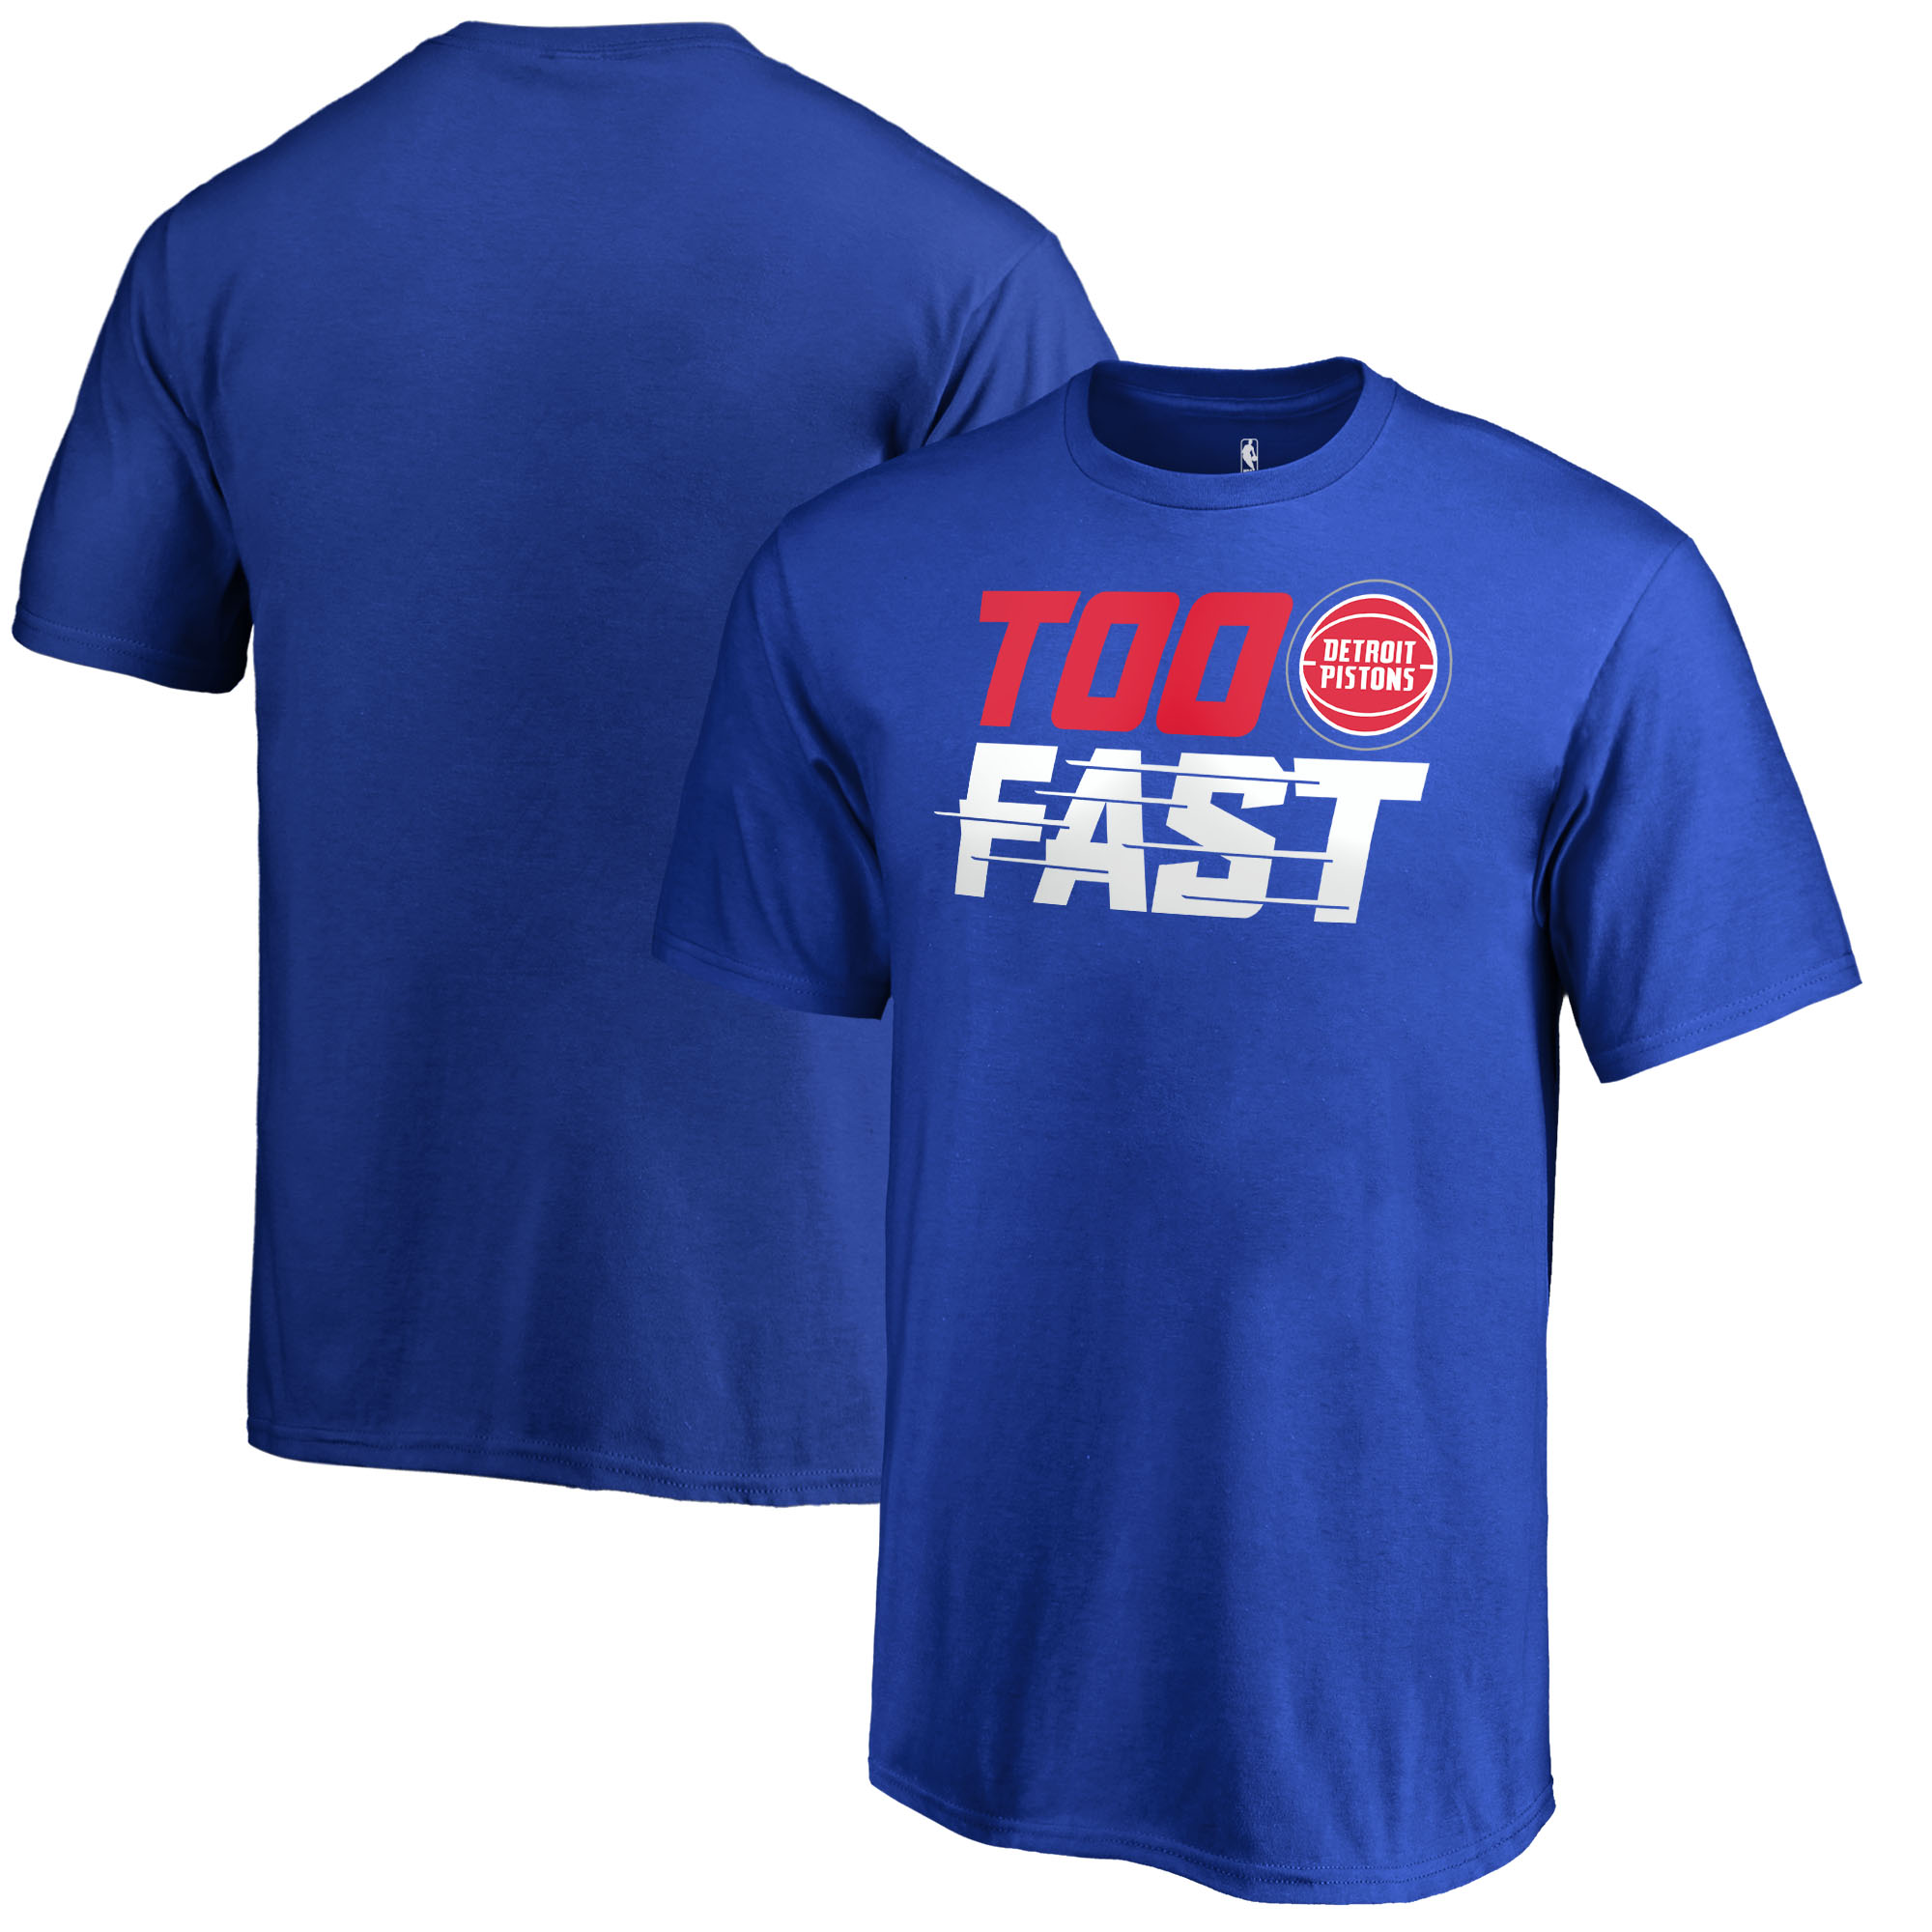 Detroit Pistons Fanatics Branded Youth Too Fast T-Shirt - Blue